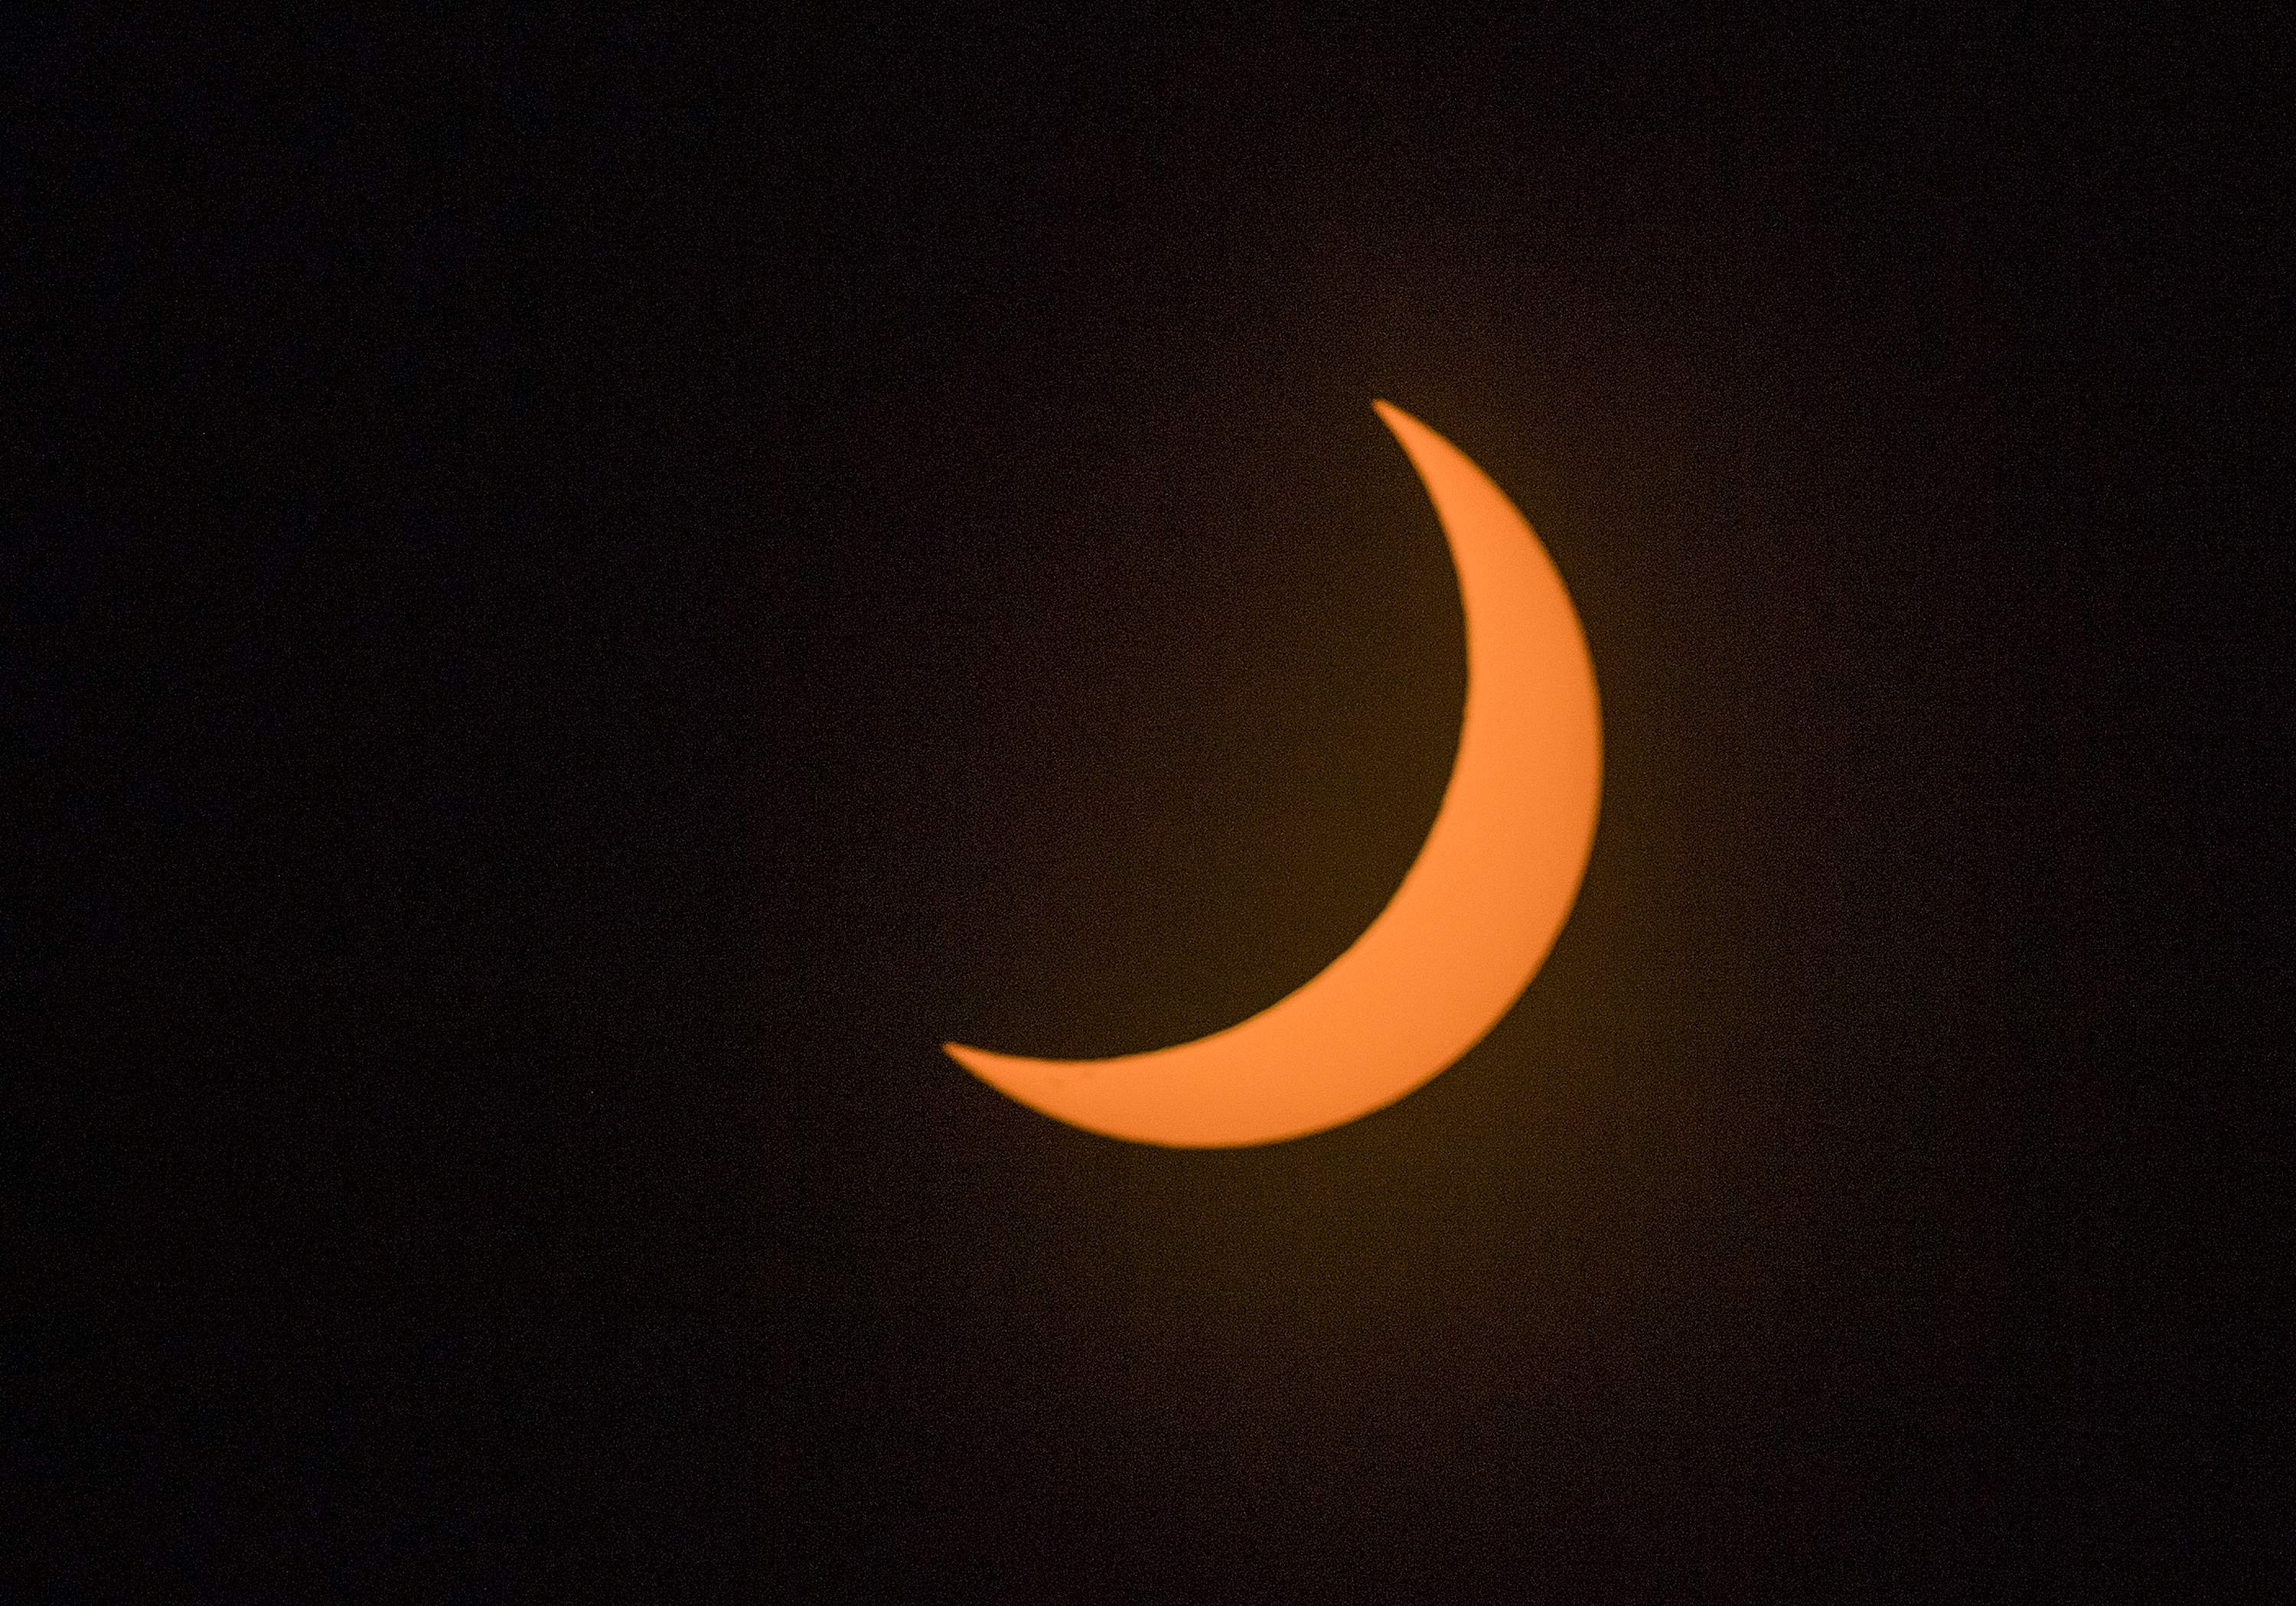 About 78% of the sun is covered by the moon at the peak of the partial eclipse over Stockton about 10:18 a.m. [CLIFFORD OTO/THE RECORD]